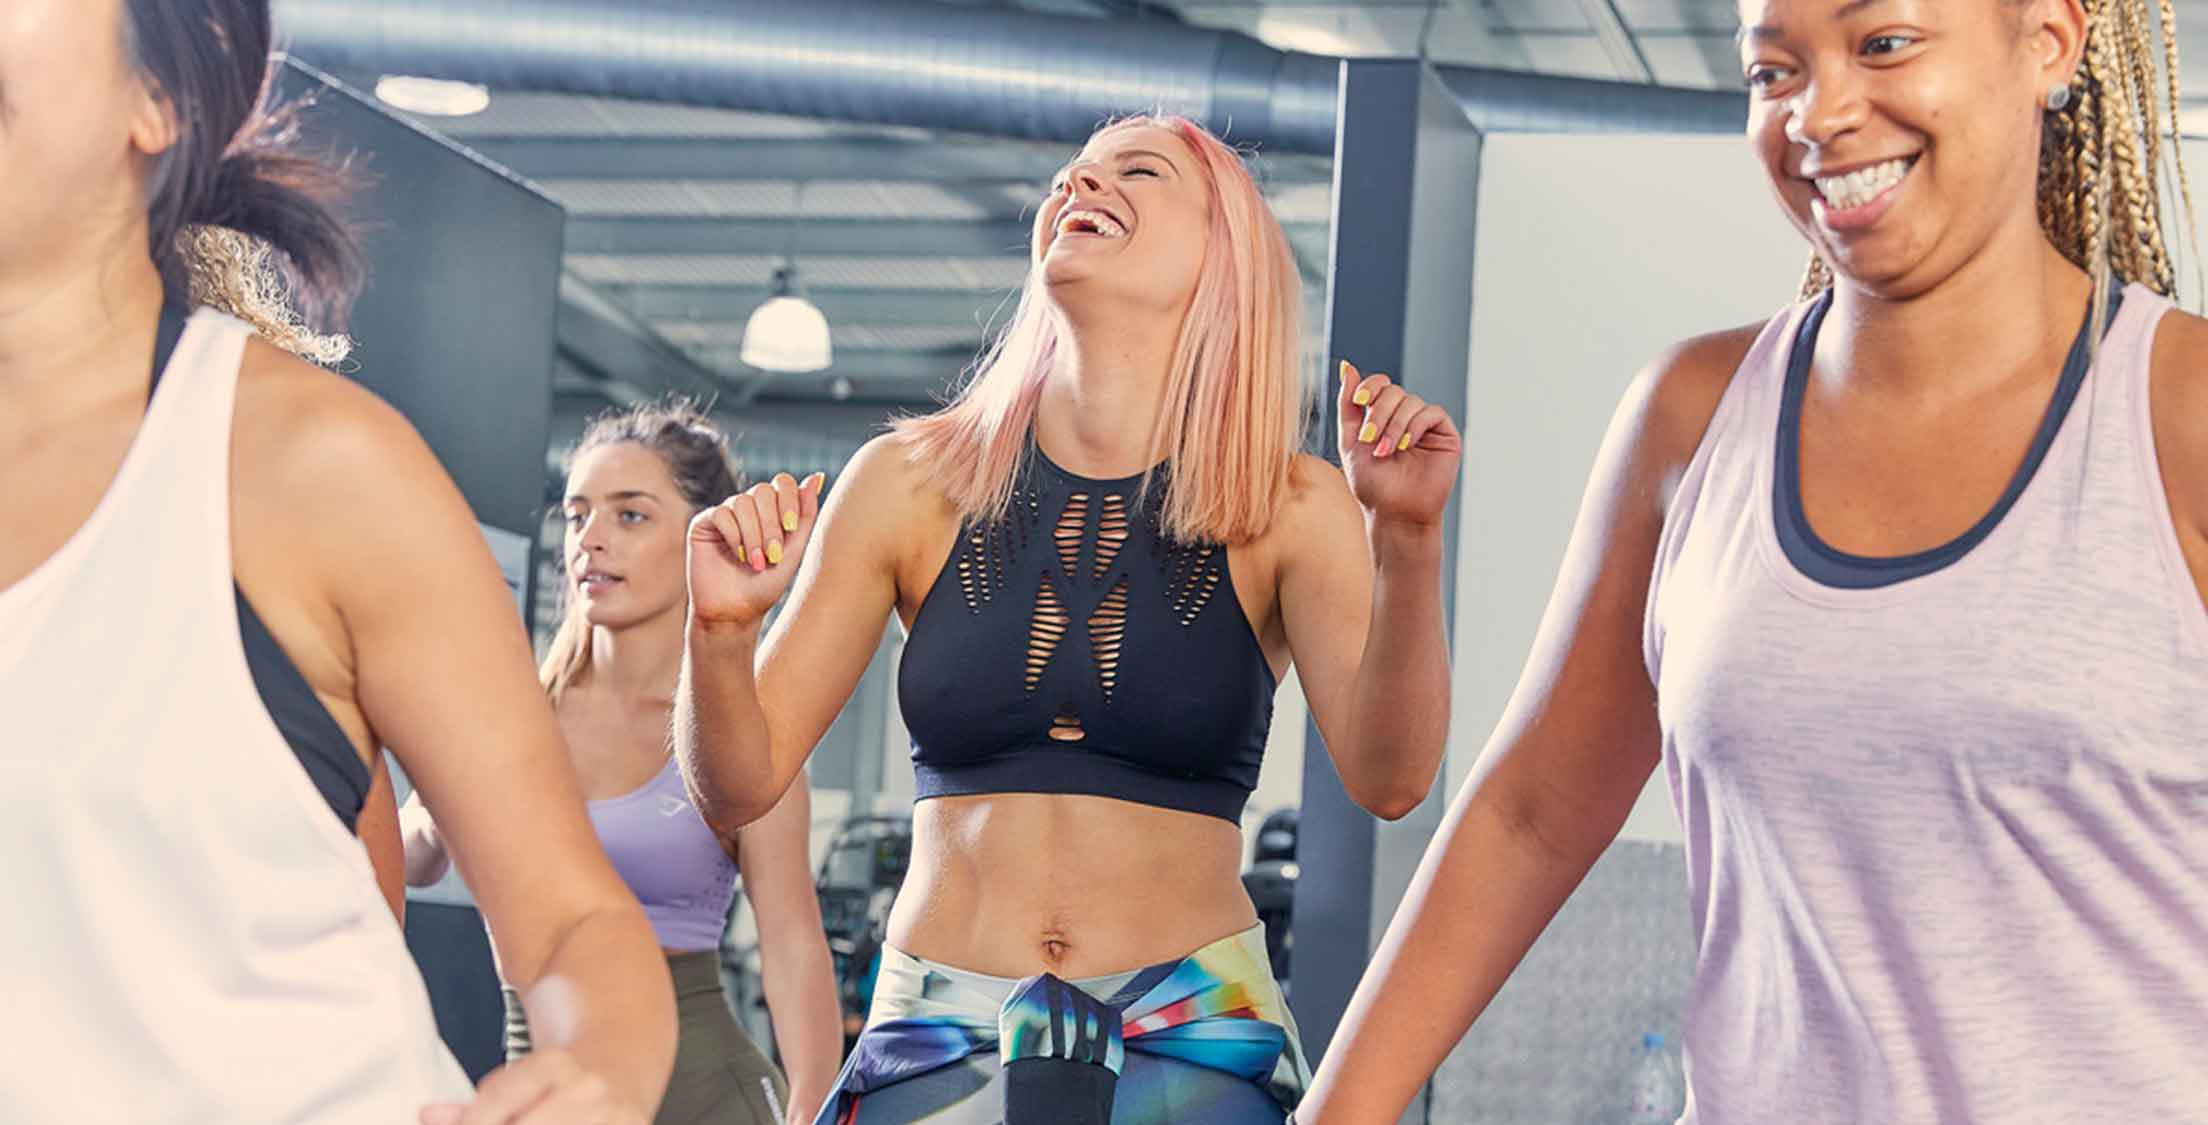 5 tips to boost your confidence in the gym